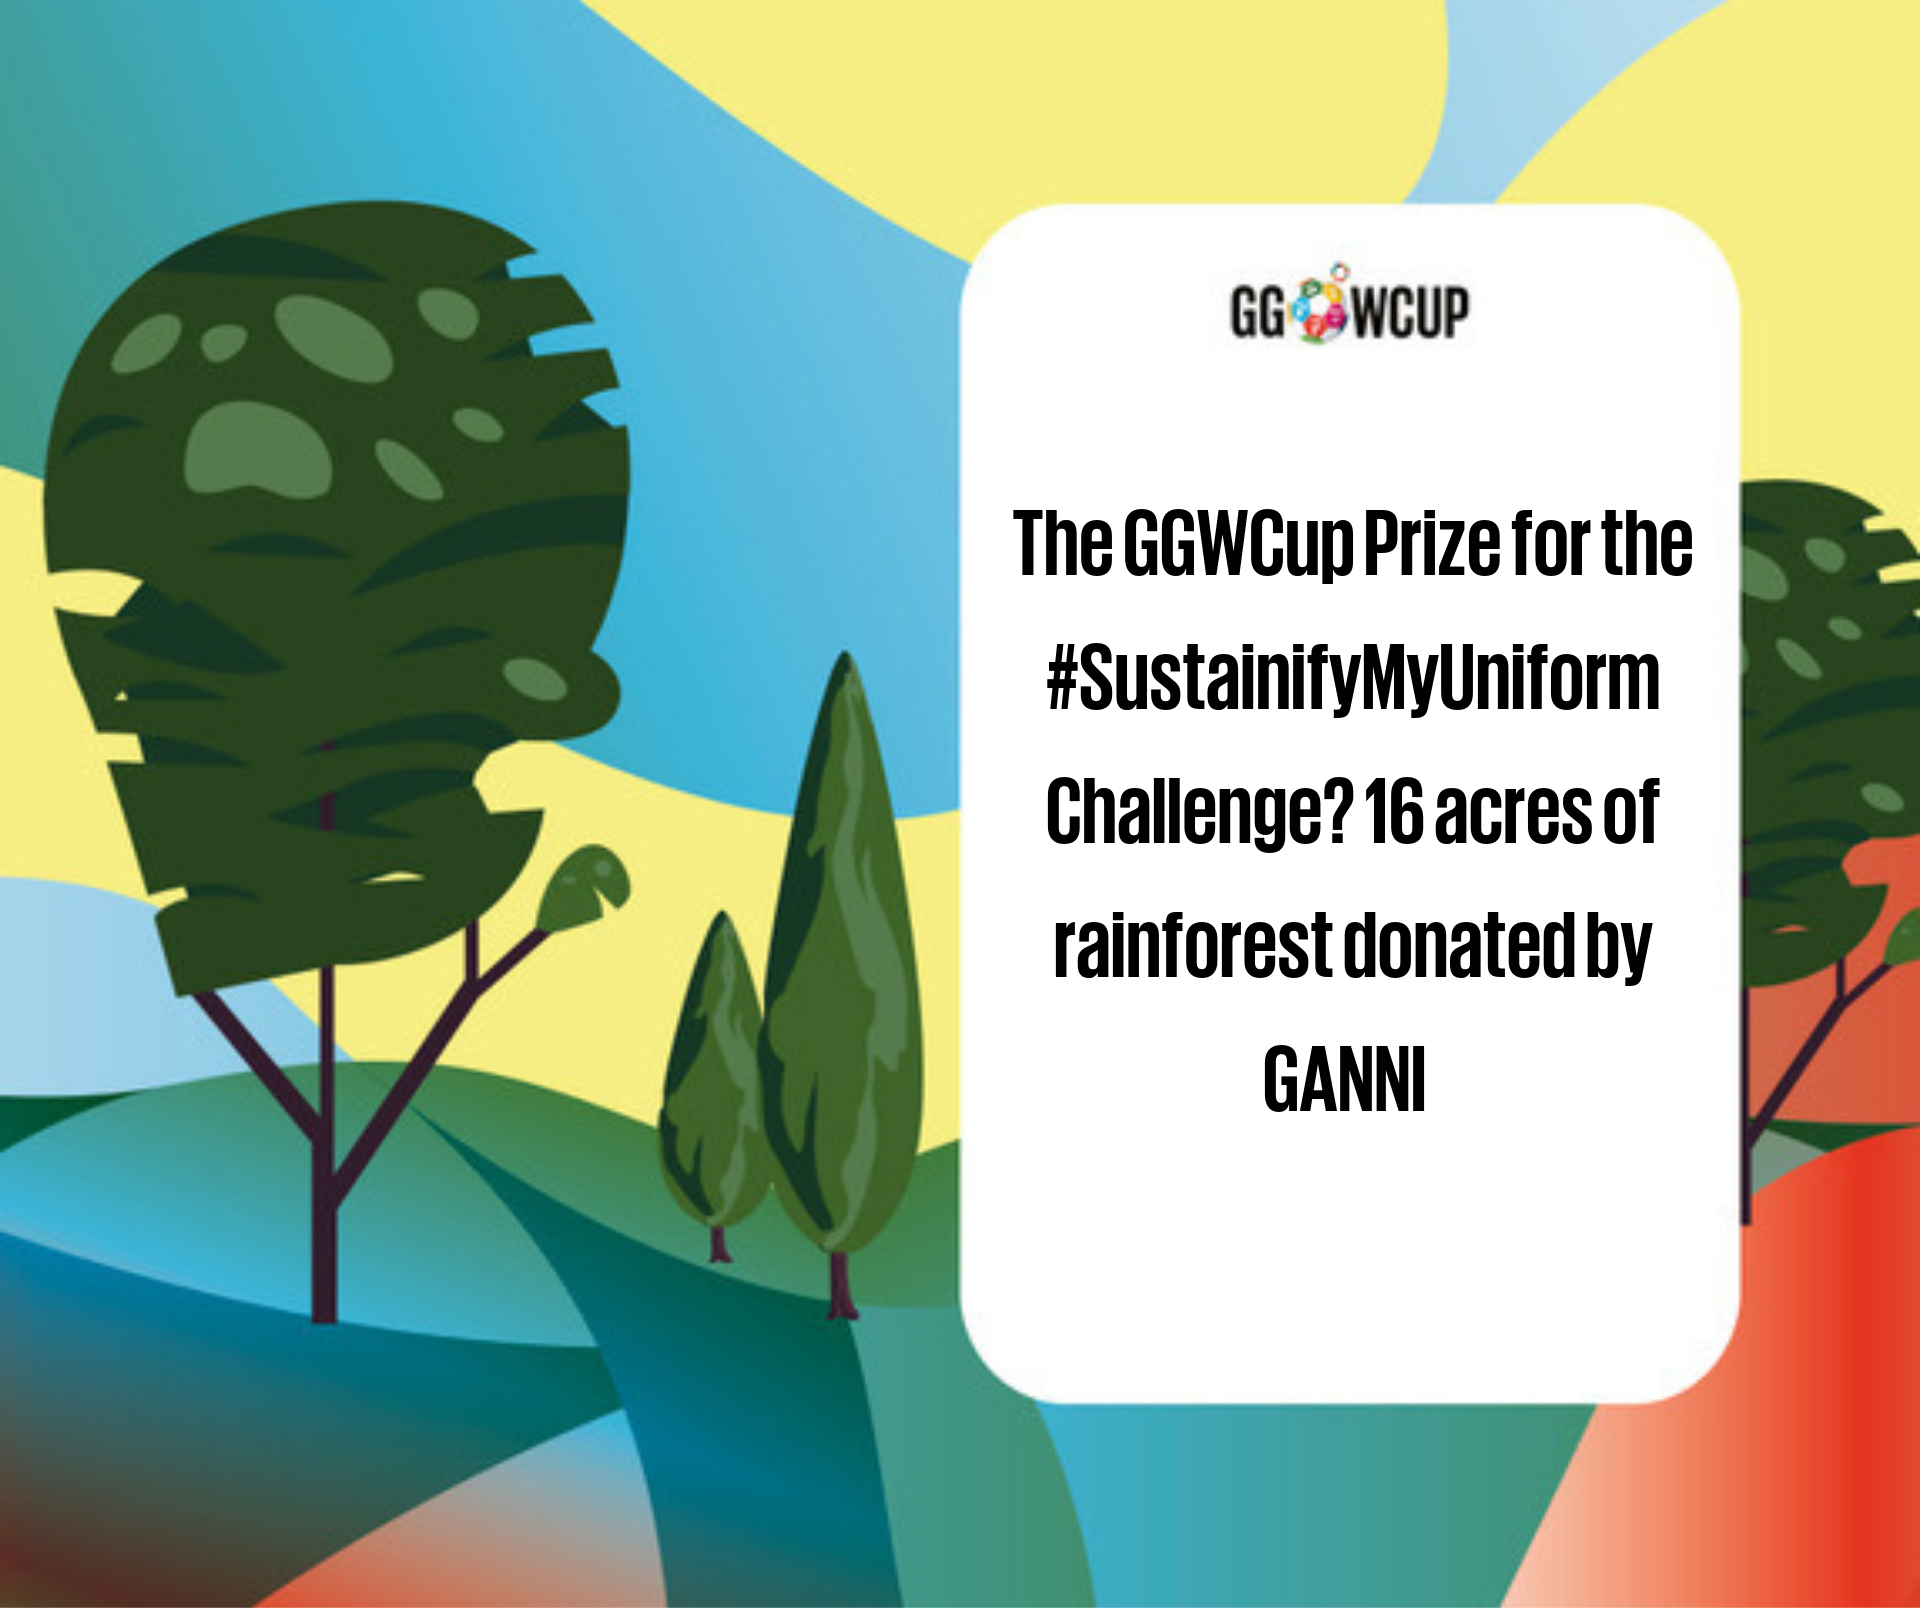 the GGWCup Prize for the #SustainifyMyUniform Challenge_ 16 acres of rainforest donated by GANNI.png